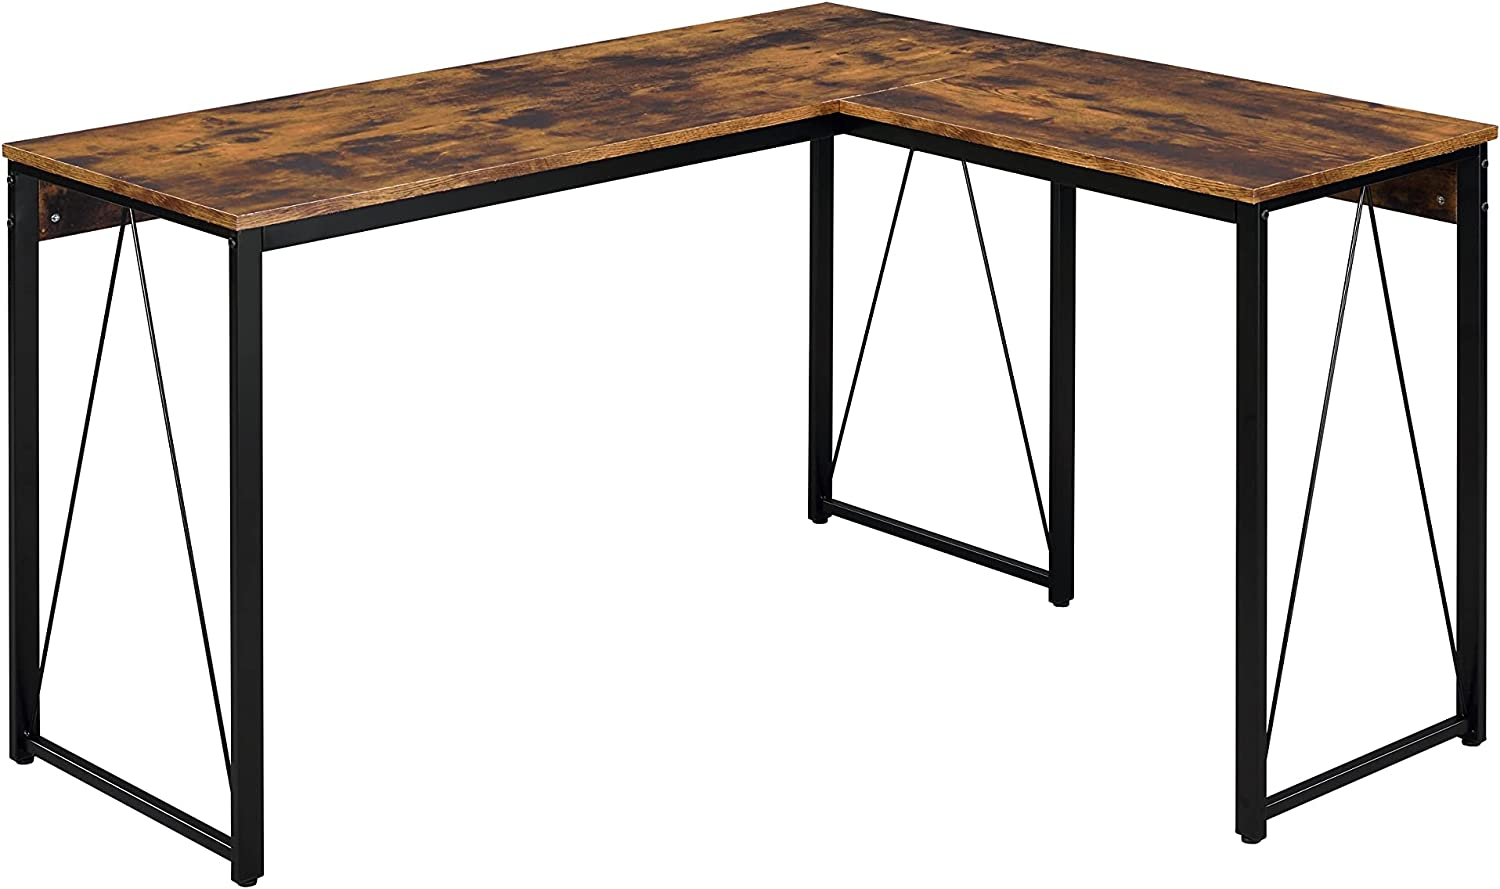 Writing Desk in Popular products Rustic Ranking TOP17 Oak and Stu Metal Frame with Finish Black